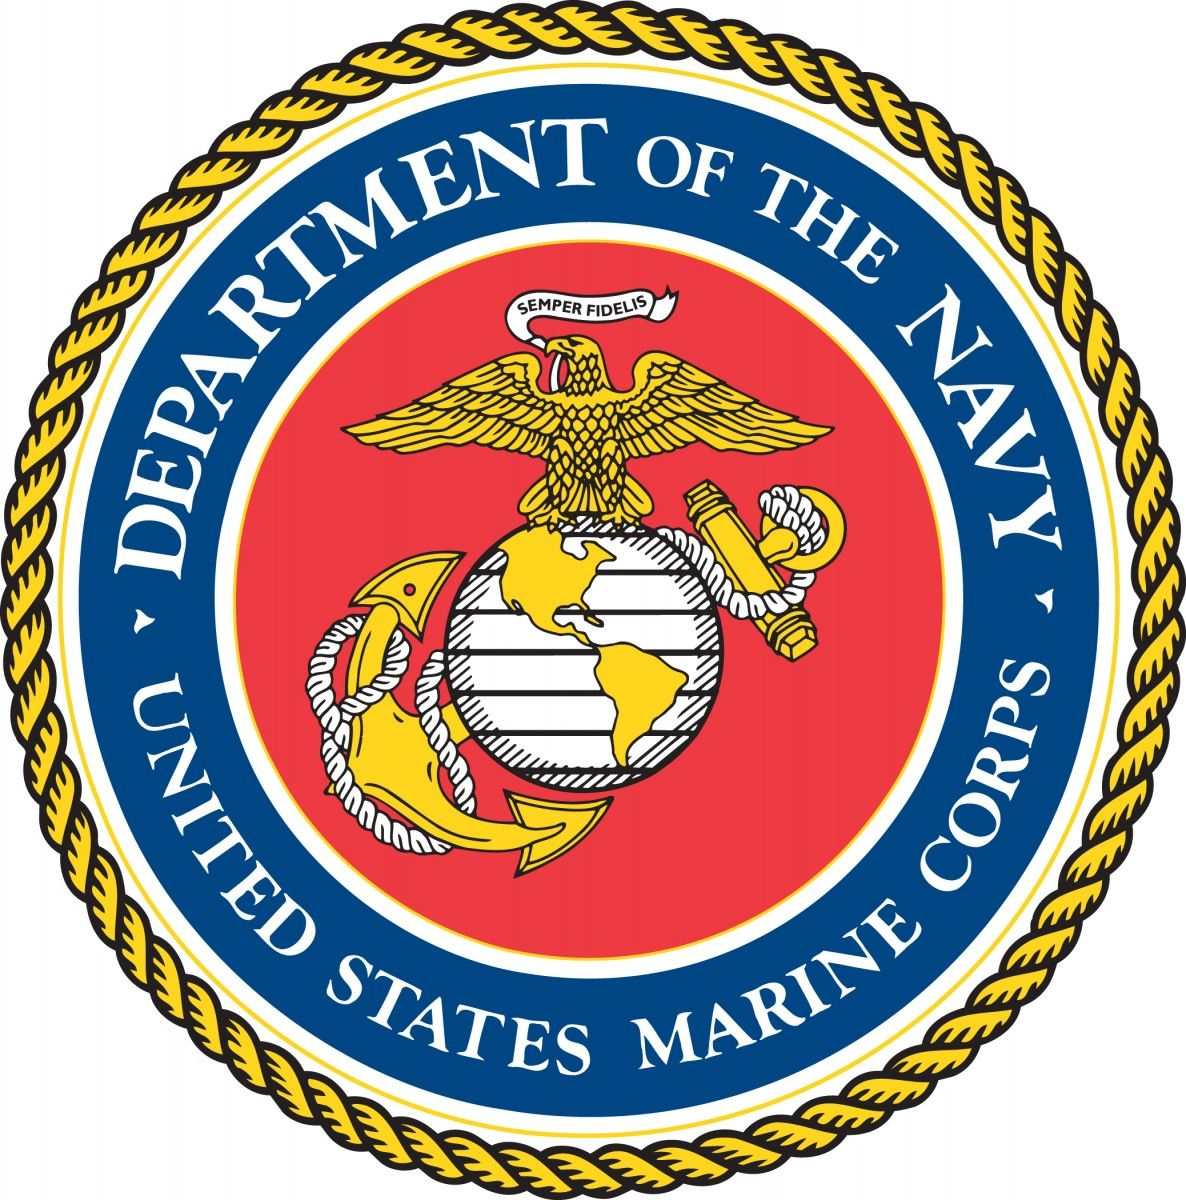 graphic about Printable Marine Corps Emblem called 20 Maritime Corps Coloring Internet pages - Printable Coloring Webpages